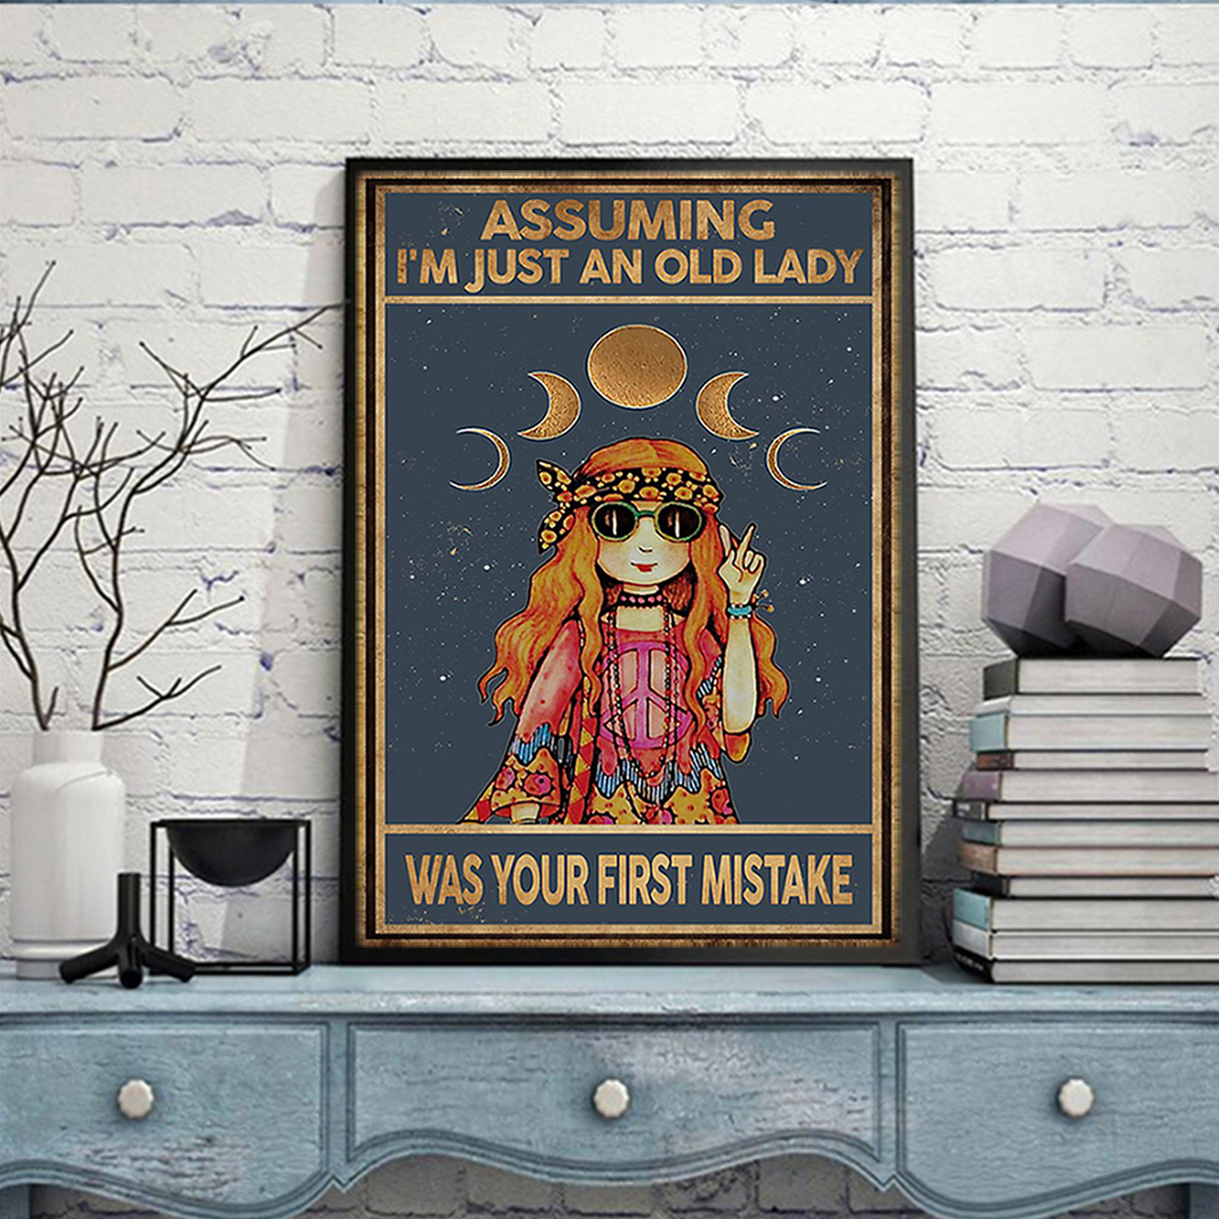 Assuming I'm just an old lady was your first mistake hippie girl poster A2